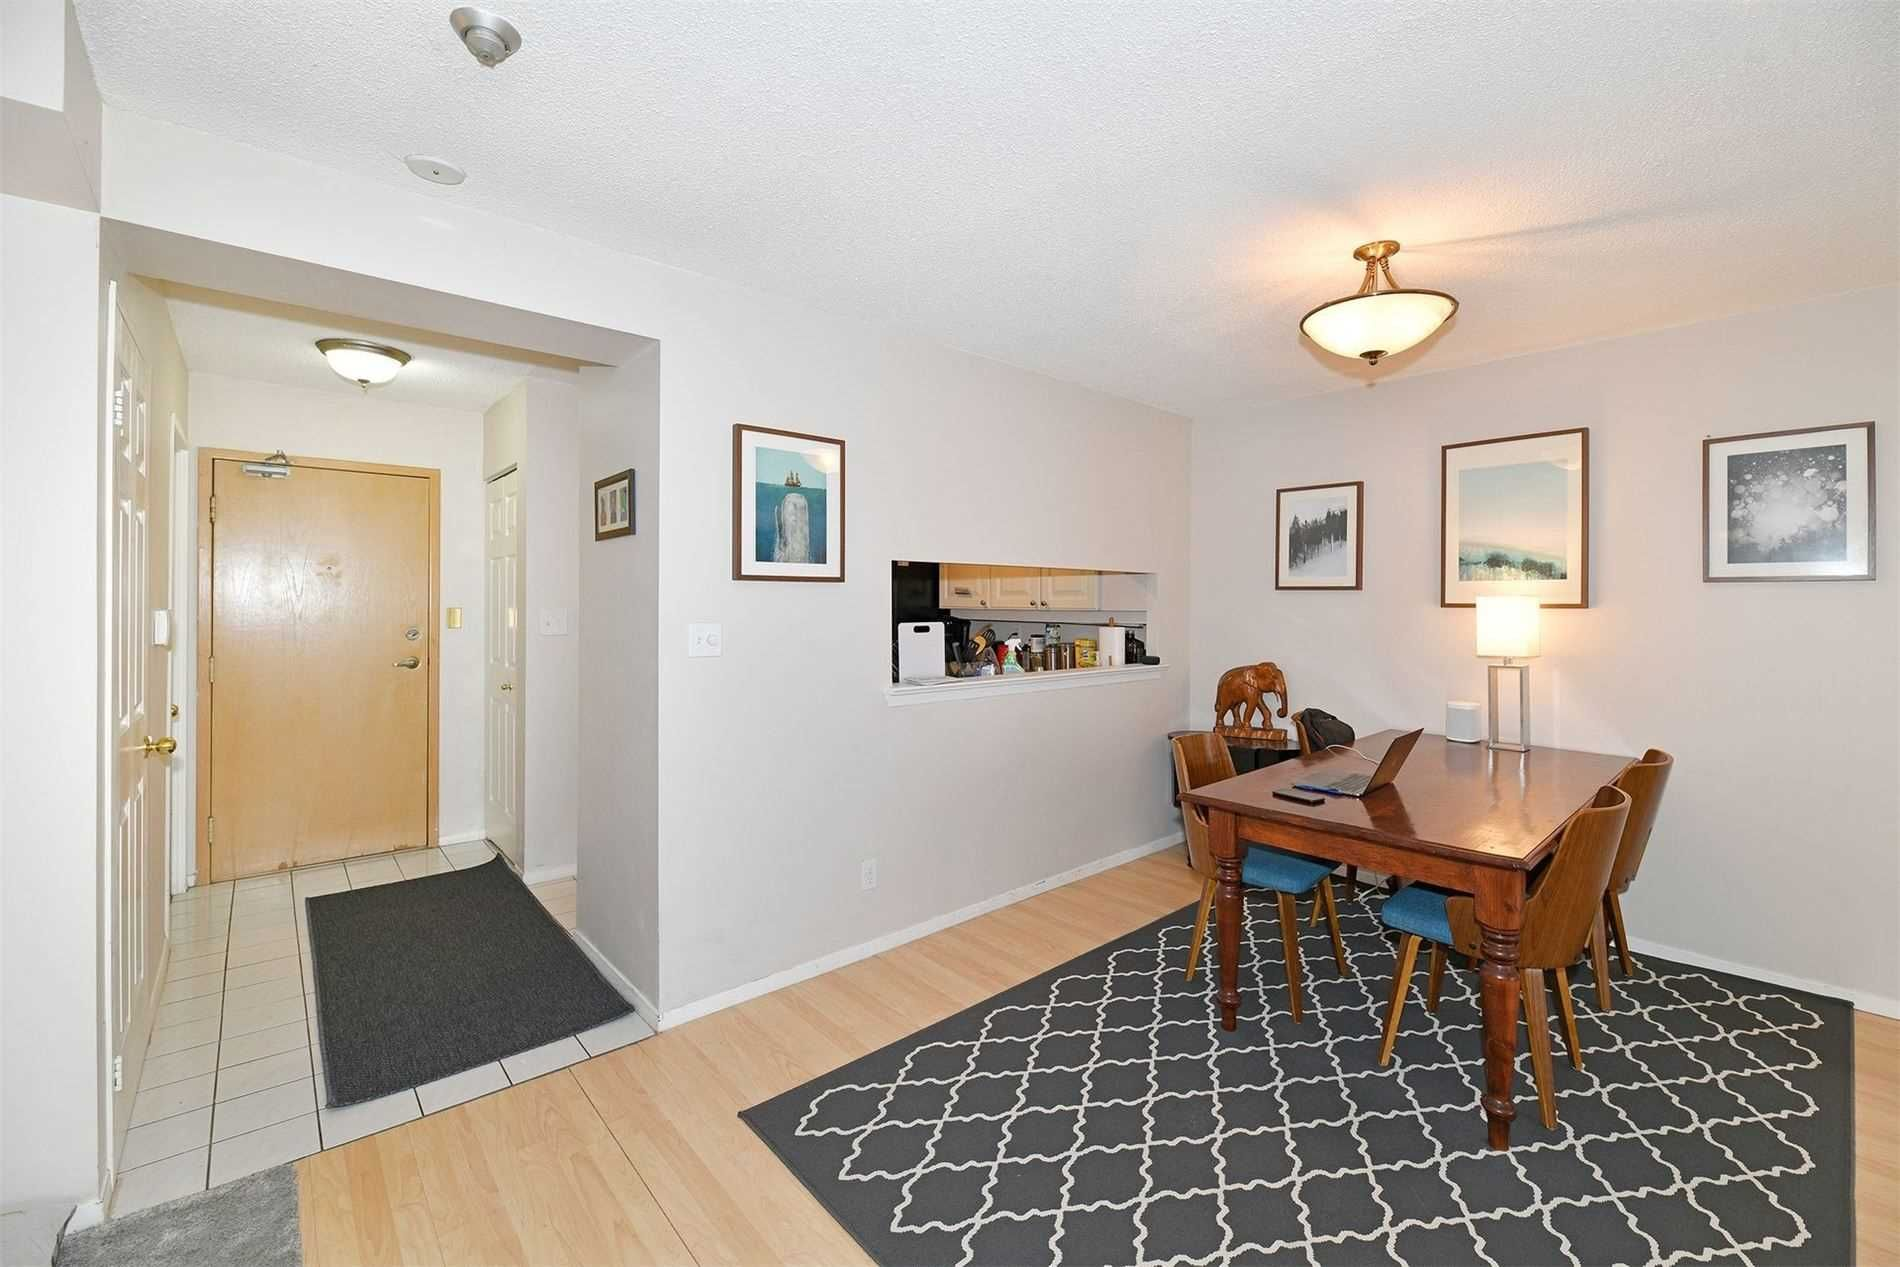 20 Southport St, unit 215 for rent in Toronto - image #2